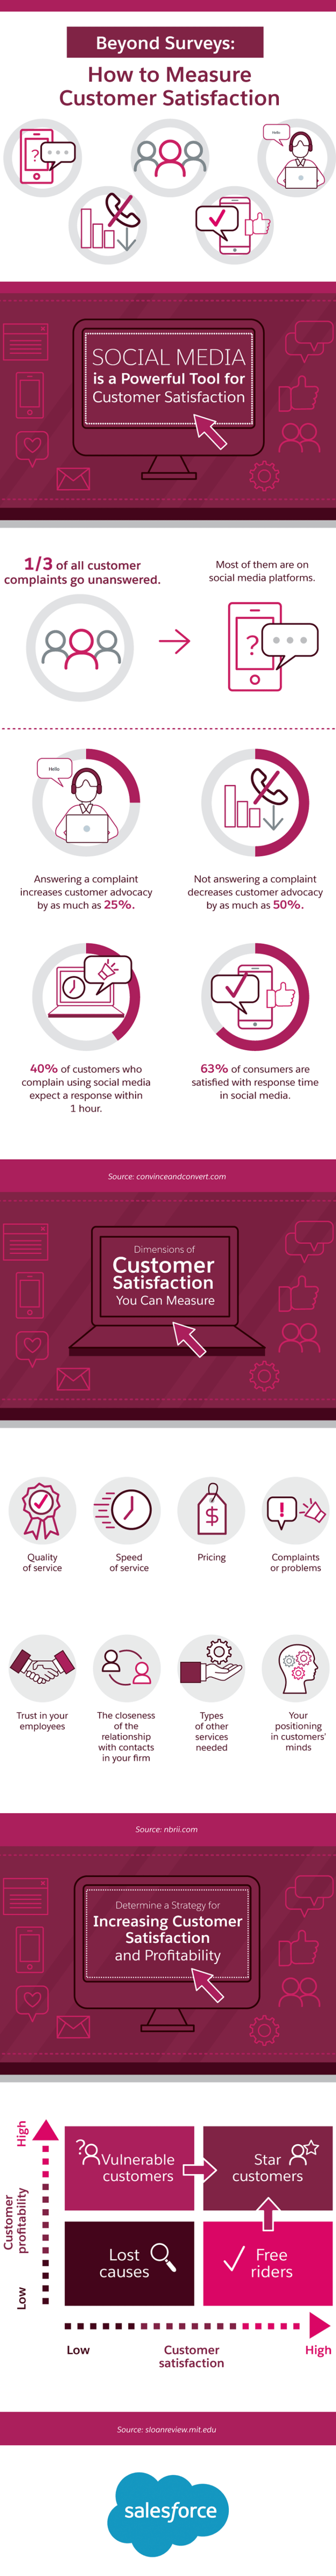 Measuring and Enhancing Customer Satisfaction